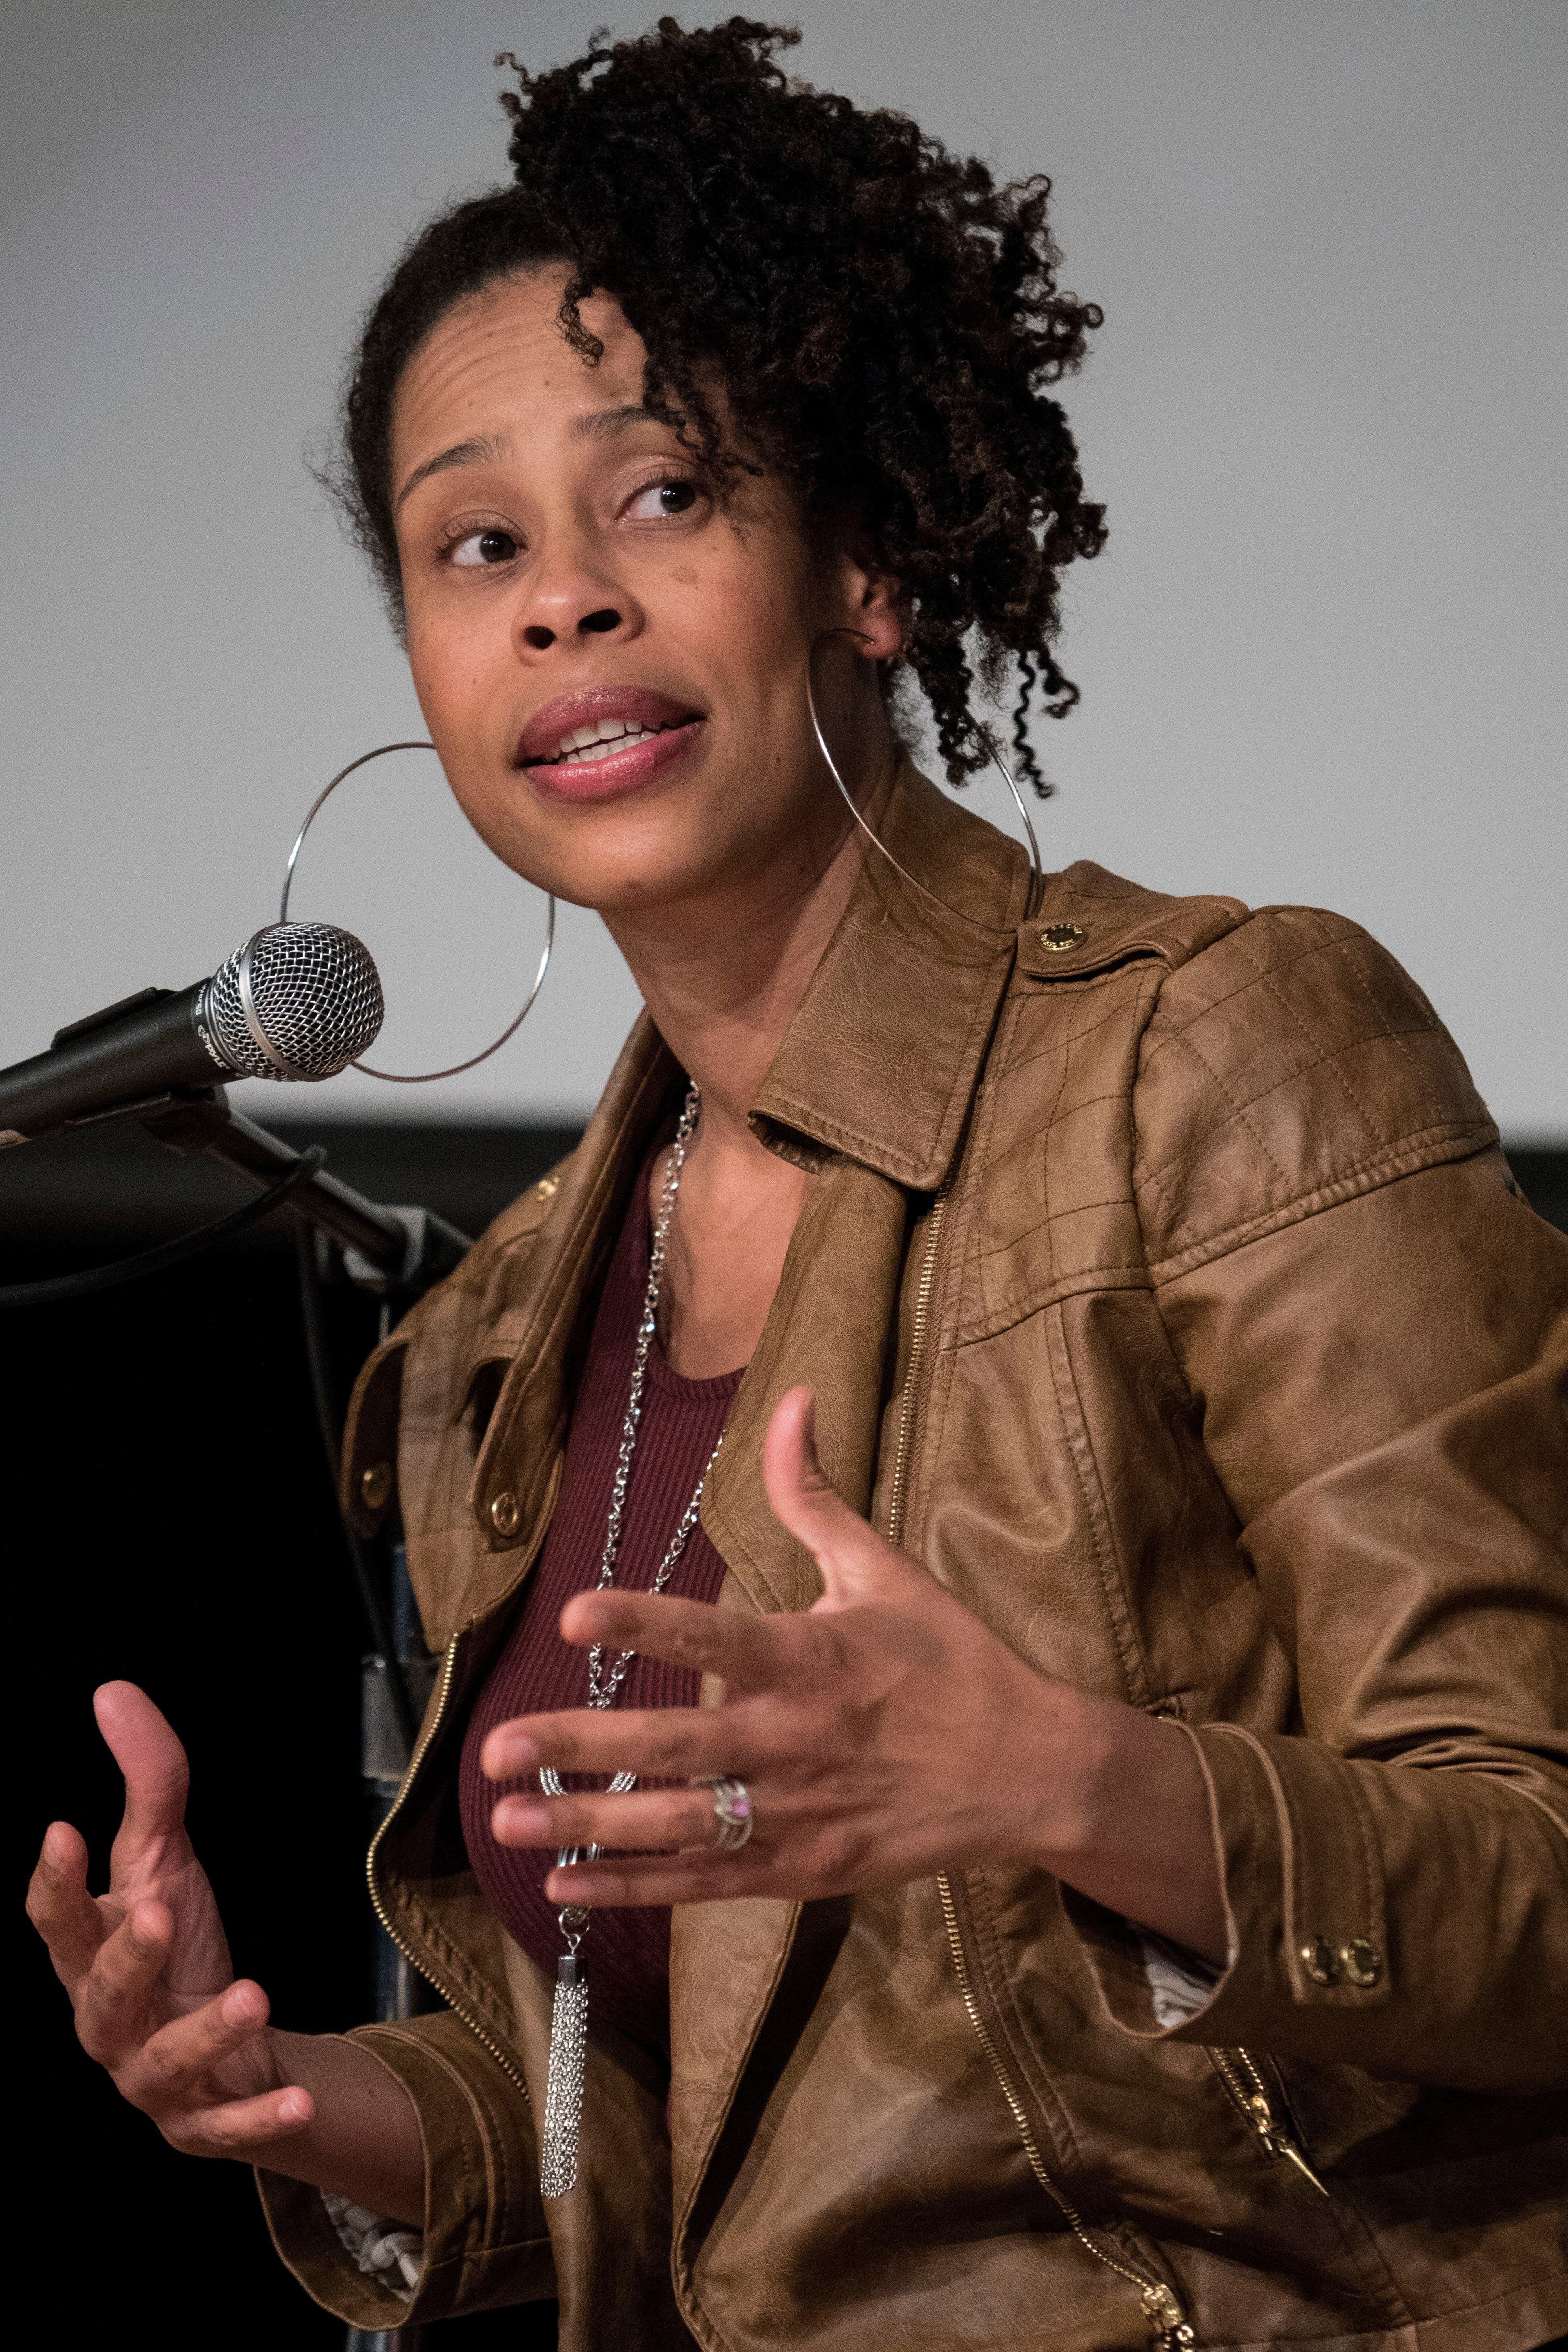 Playwright Dominique Morisseau at an event at the Charles H. Wright Museum of African American History in 2016.